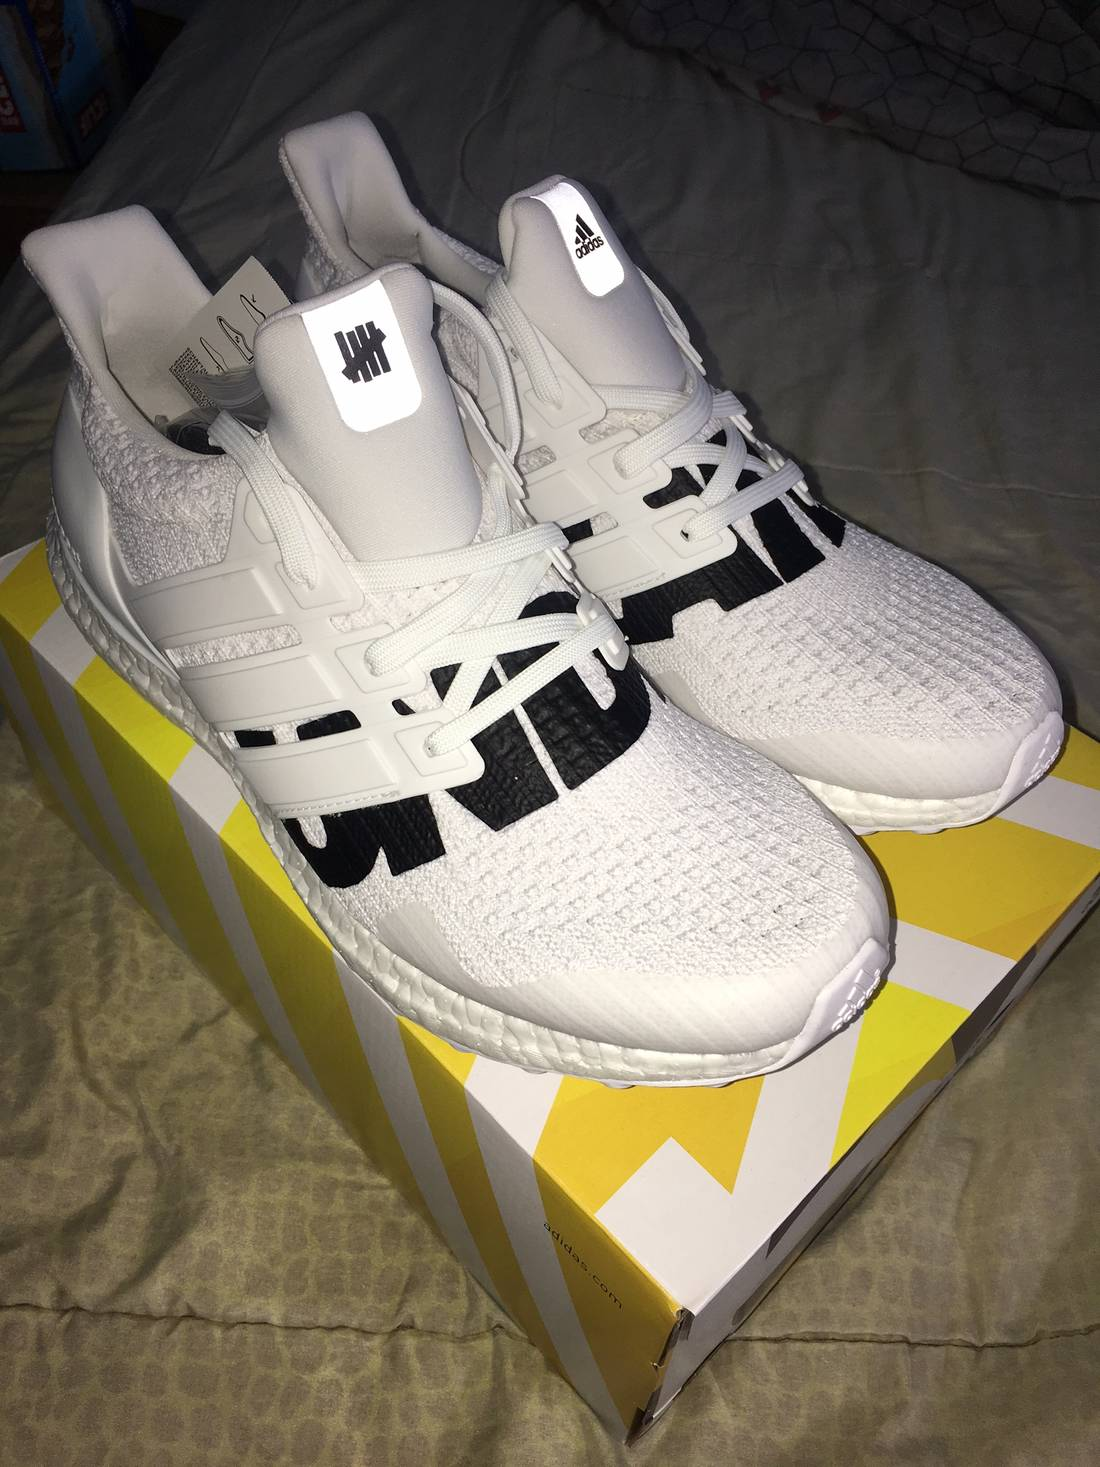 Brand New Adidas x Undefeated Ultra Boost Size 10.5 IN HAND